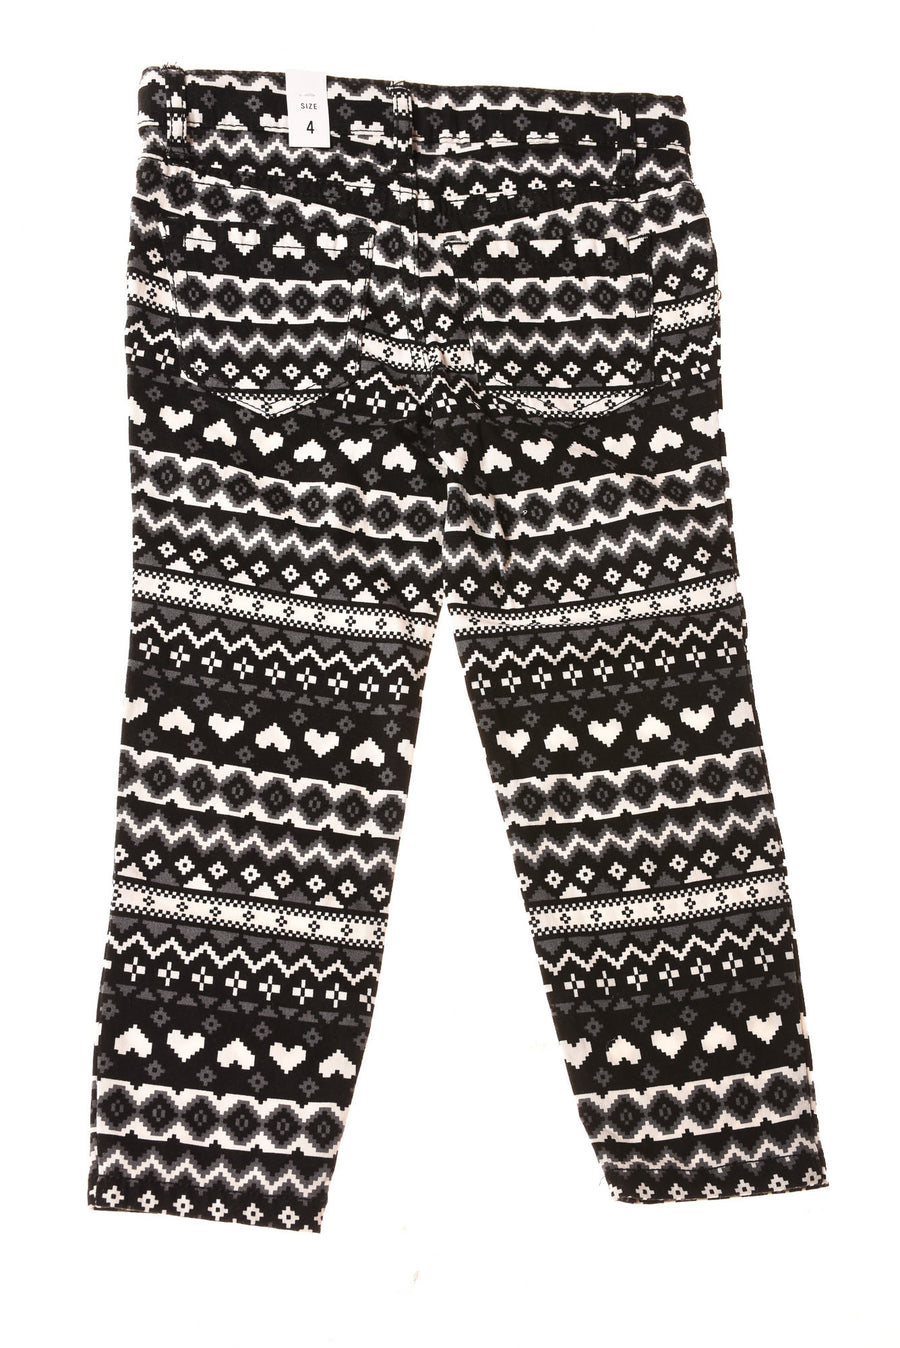 NEW The Children's Place Toddler Girl's Baby Jeans 4 Black / Print